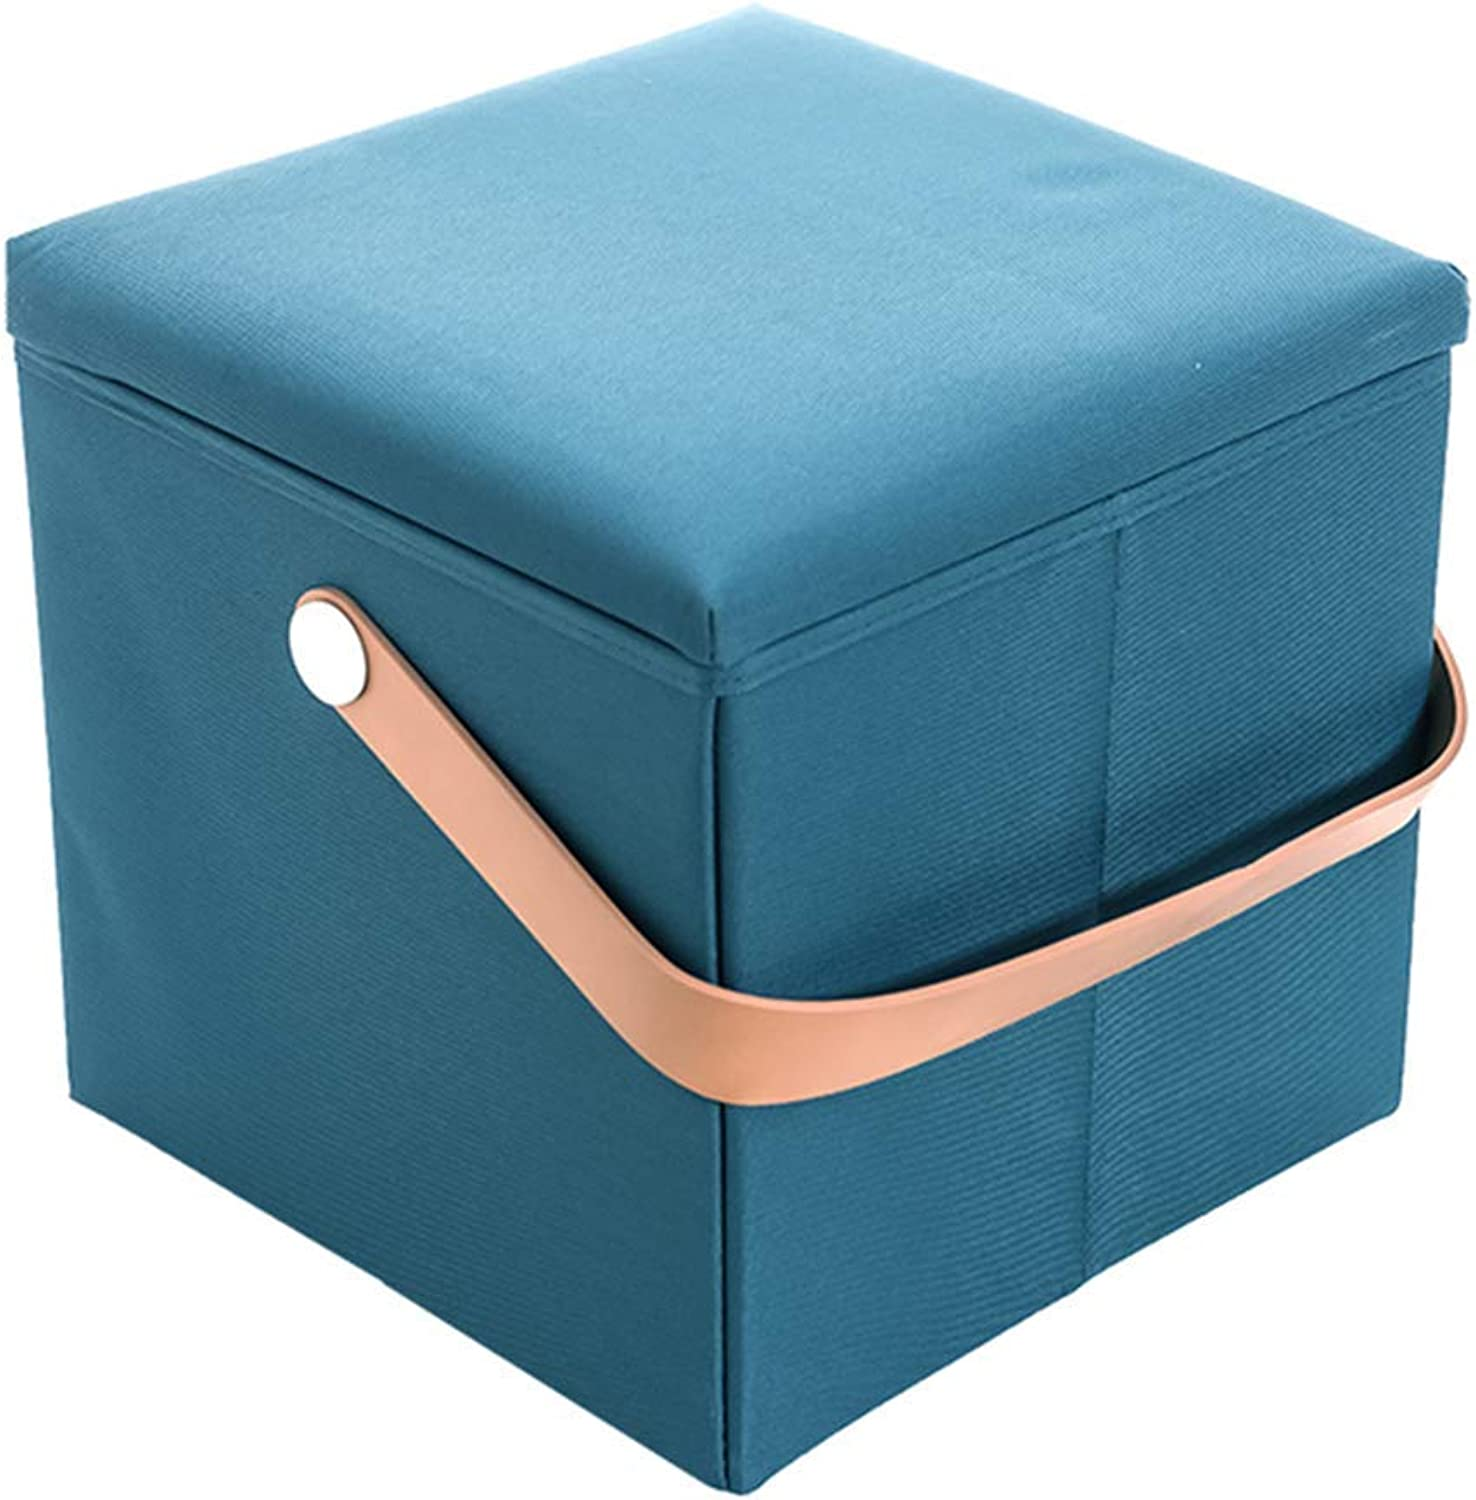 ChenDz Cute Stool Oxford Cloth Storage Stool Storage Stool seat Box Change shoes Stool Storage Box Square Folding Stool can sit People (color   bluee)